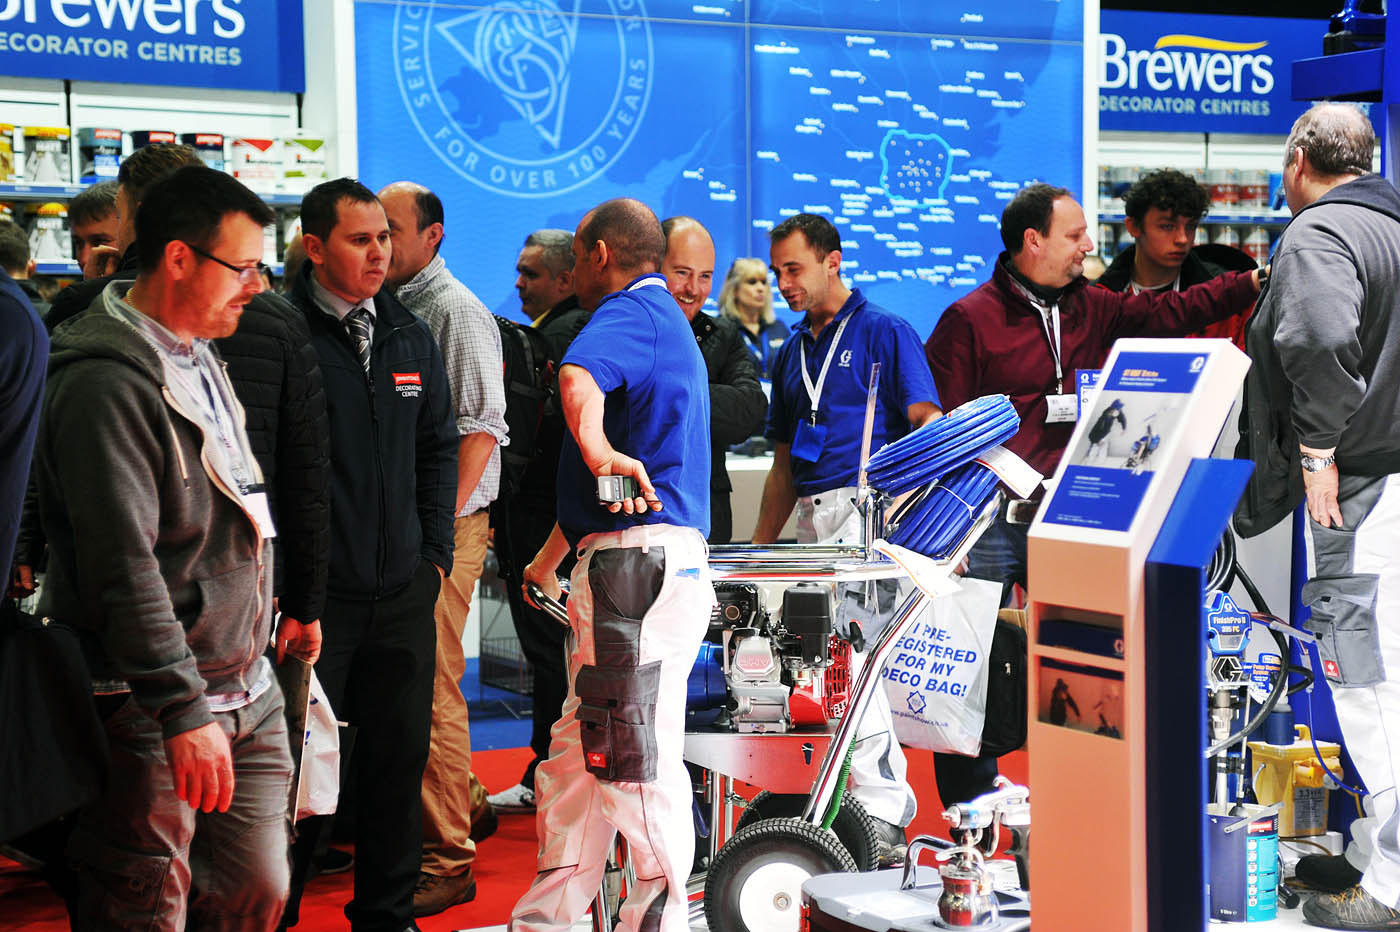 PD Show - Brewers Decorator Centres Stand